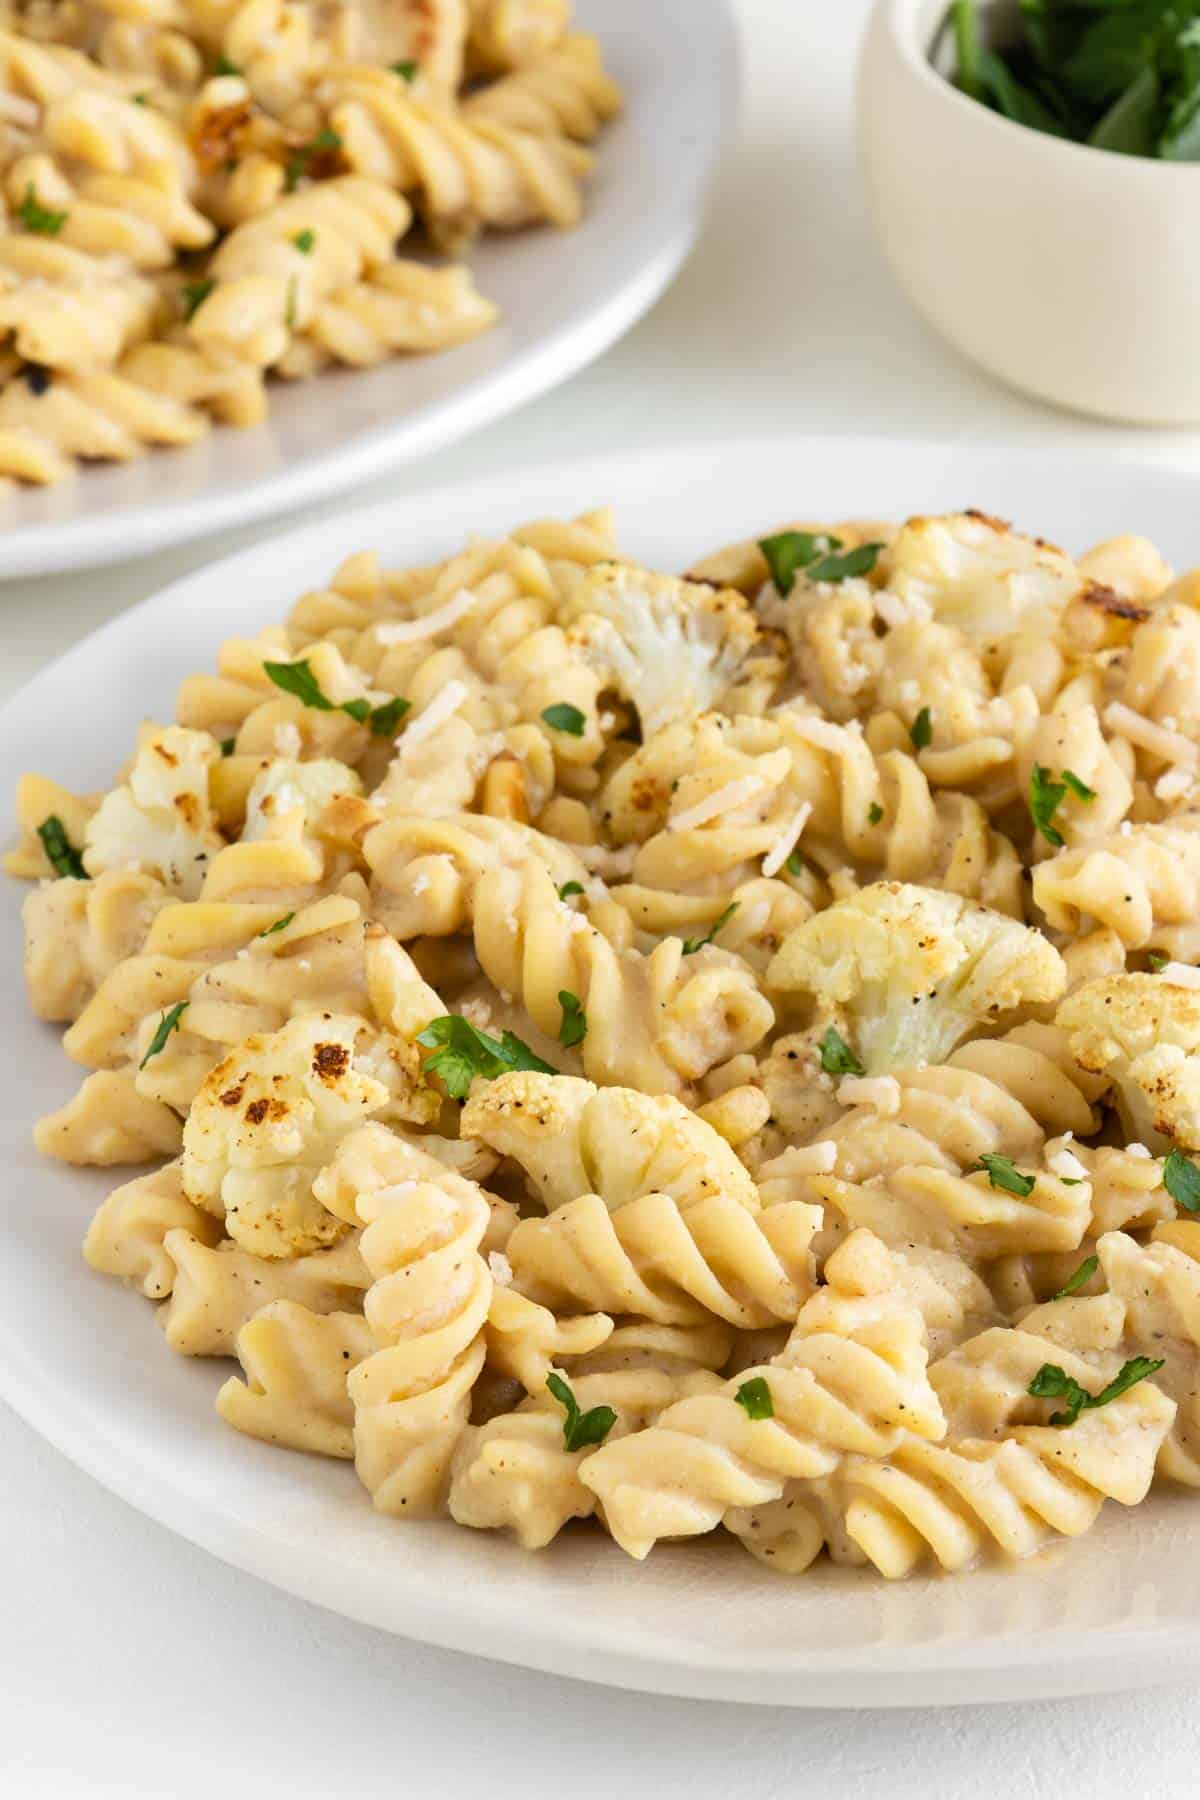 vegan roasted cauliflower alfredo pasta tossed with parsley, pine nuts, and parmesan cheese